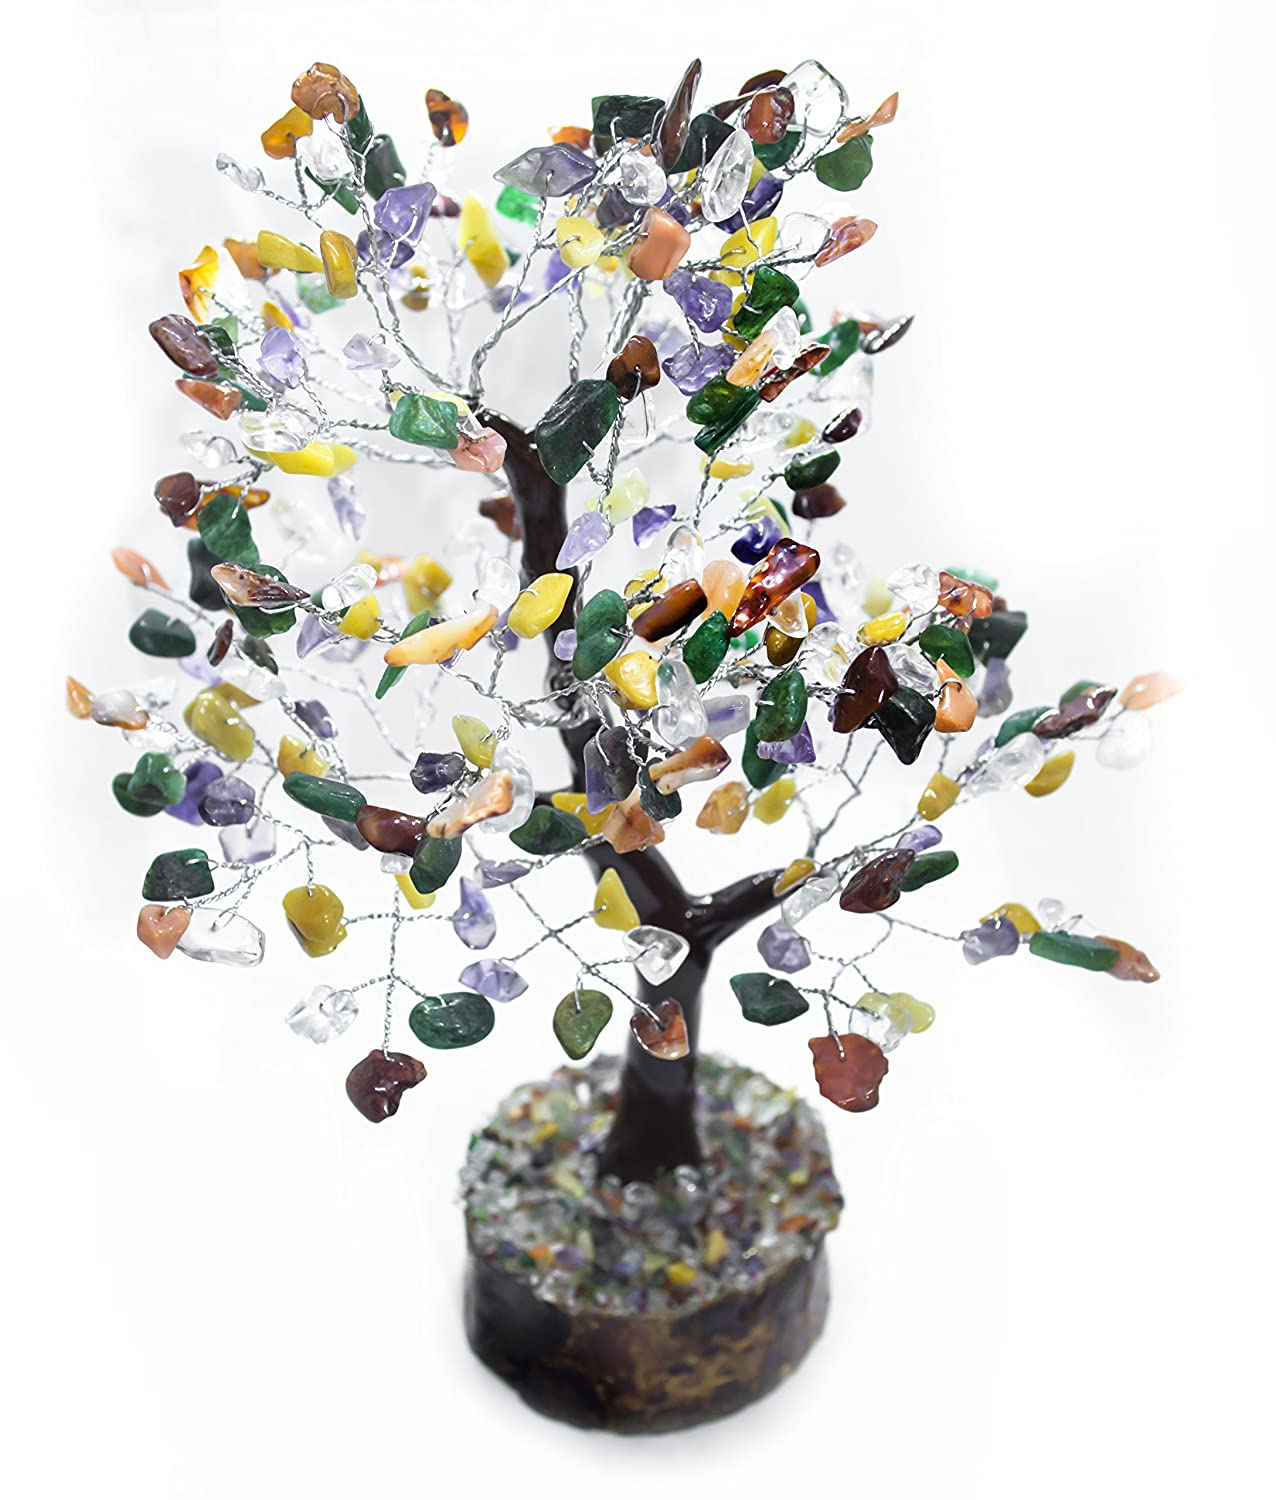 FASHIONZAADI Amethyst /& Citrine Natural Stone Feng Shui Bonsai Money Tree for Chakra Balancing Good Luck EMF Protection Healing Table D/écor Health Prosperity Size 10-12 inch Golden Wire